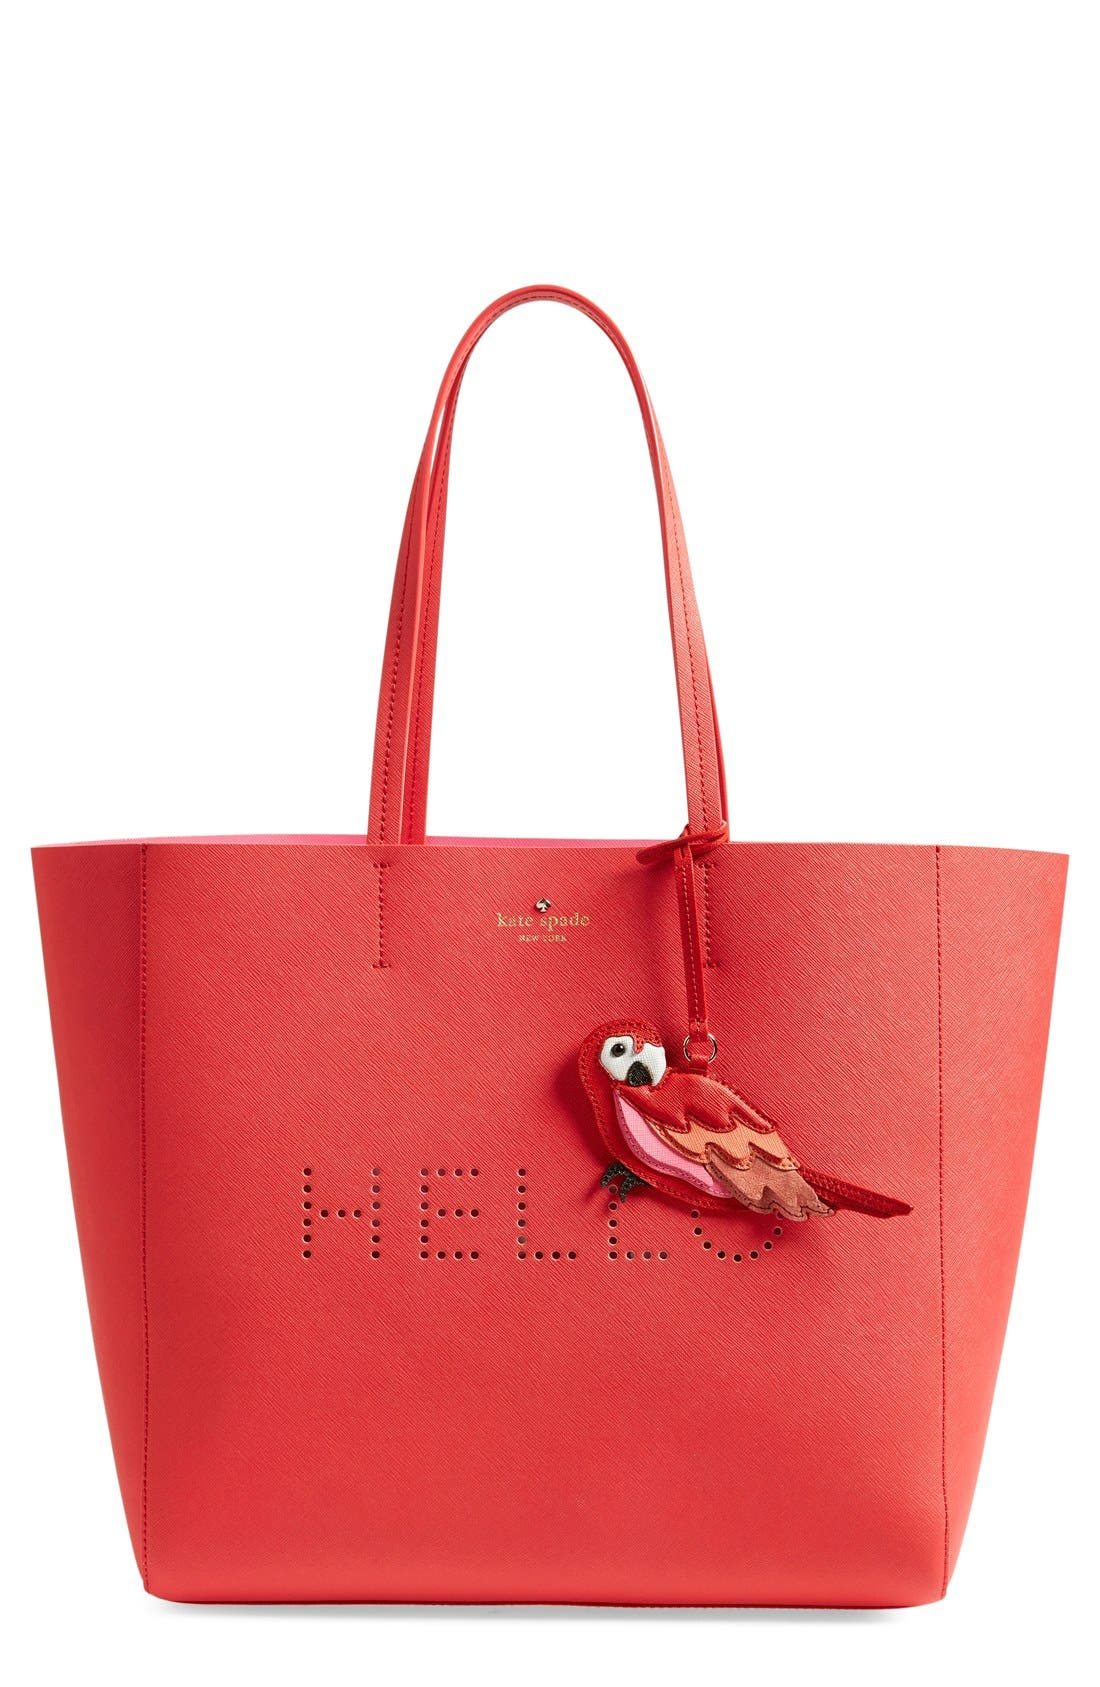 Main Image - kate spade new york 'flights of fancy - hallie' saffiano leather tote